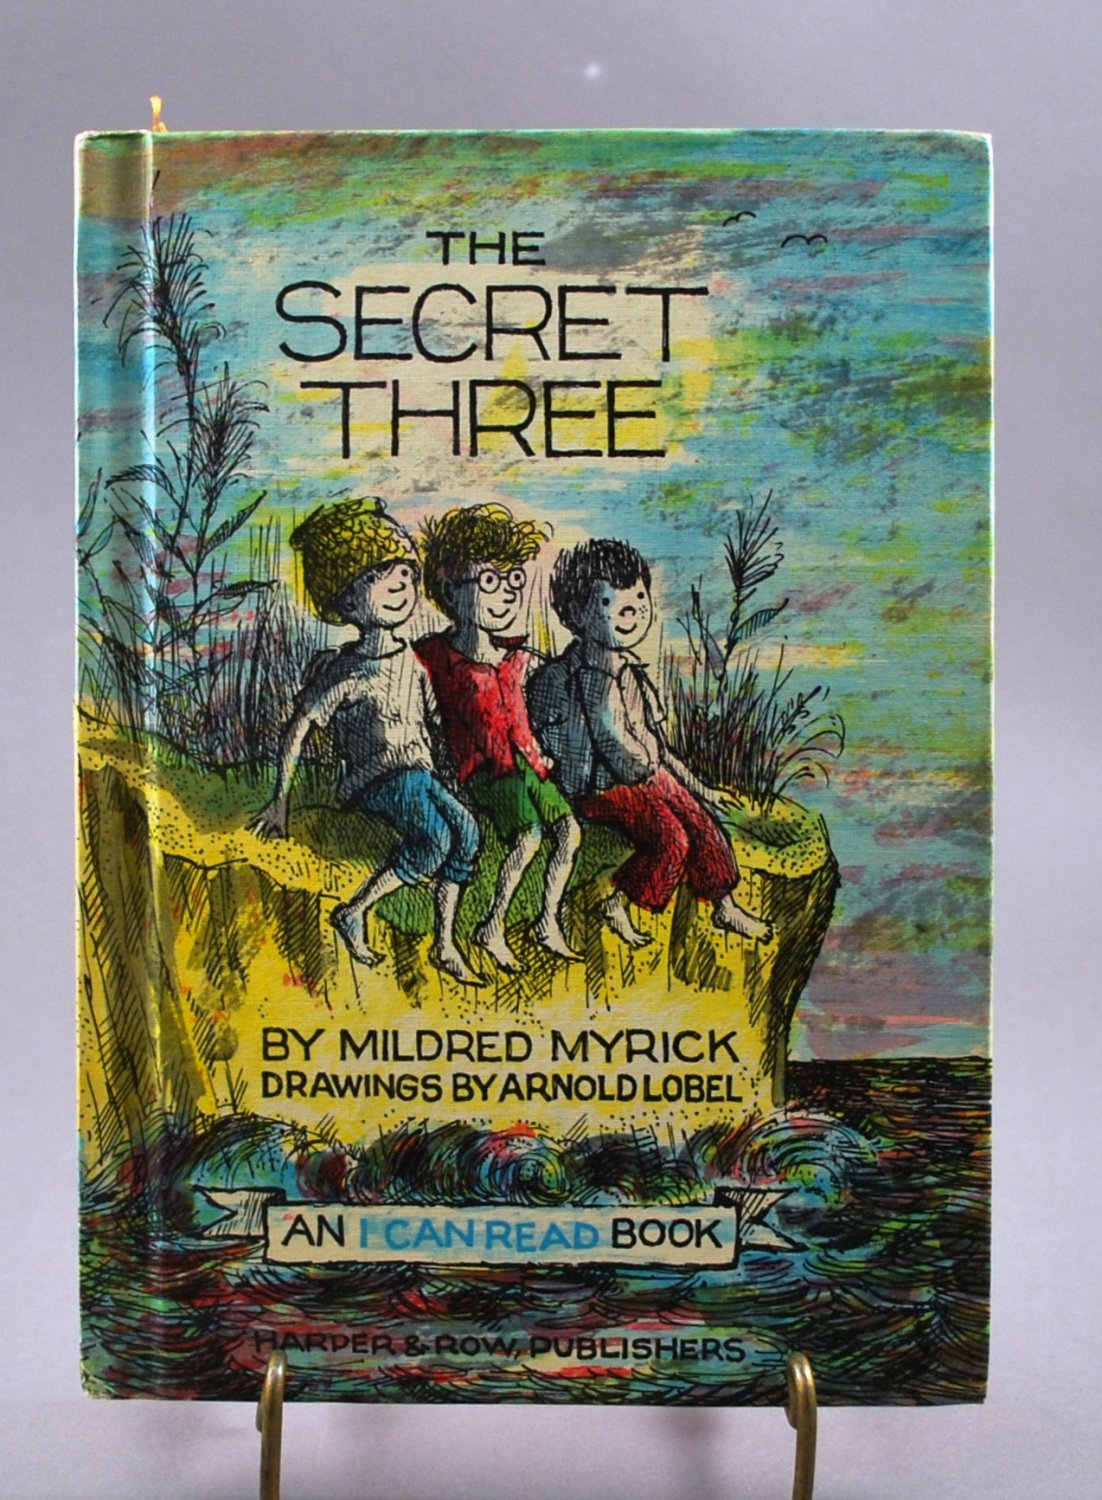 The Secret Three by Mildred Myrick An I Can Read Book